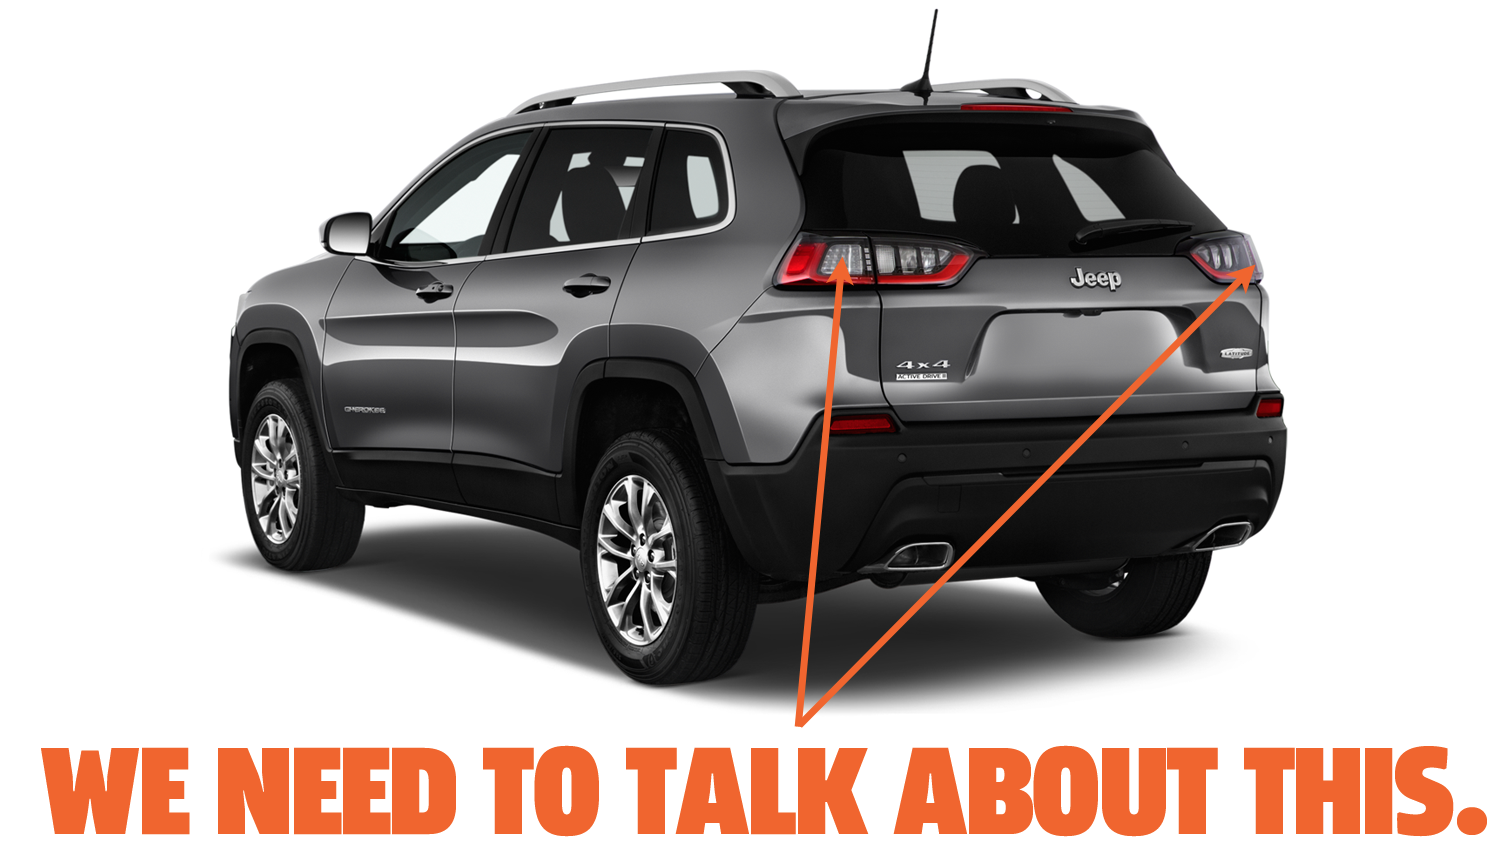 The New Jeep Cherokee's Taillights Have An Idiotic Design